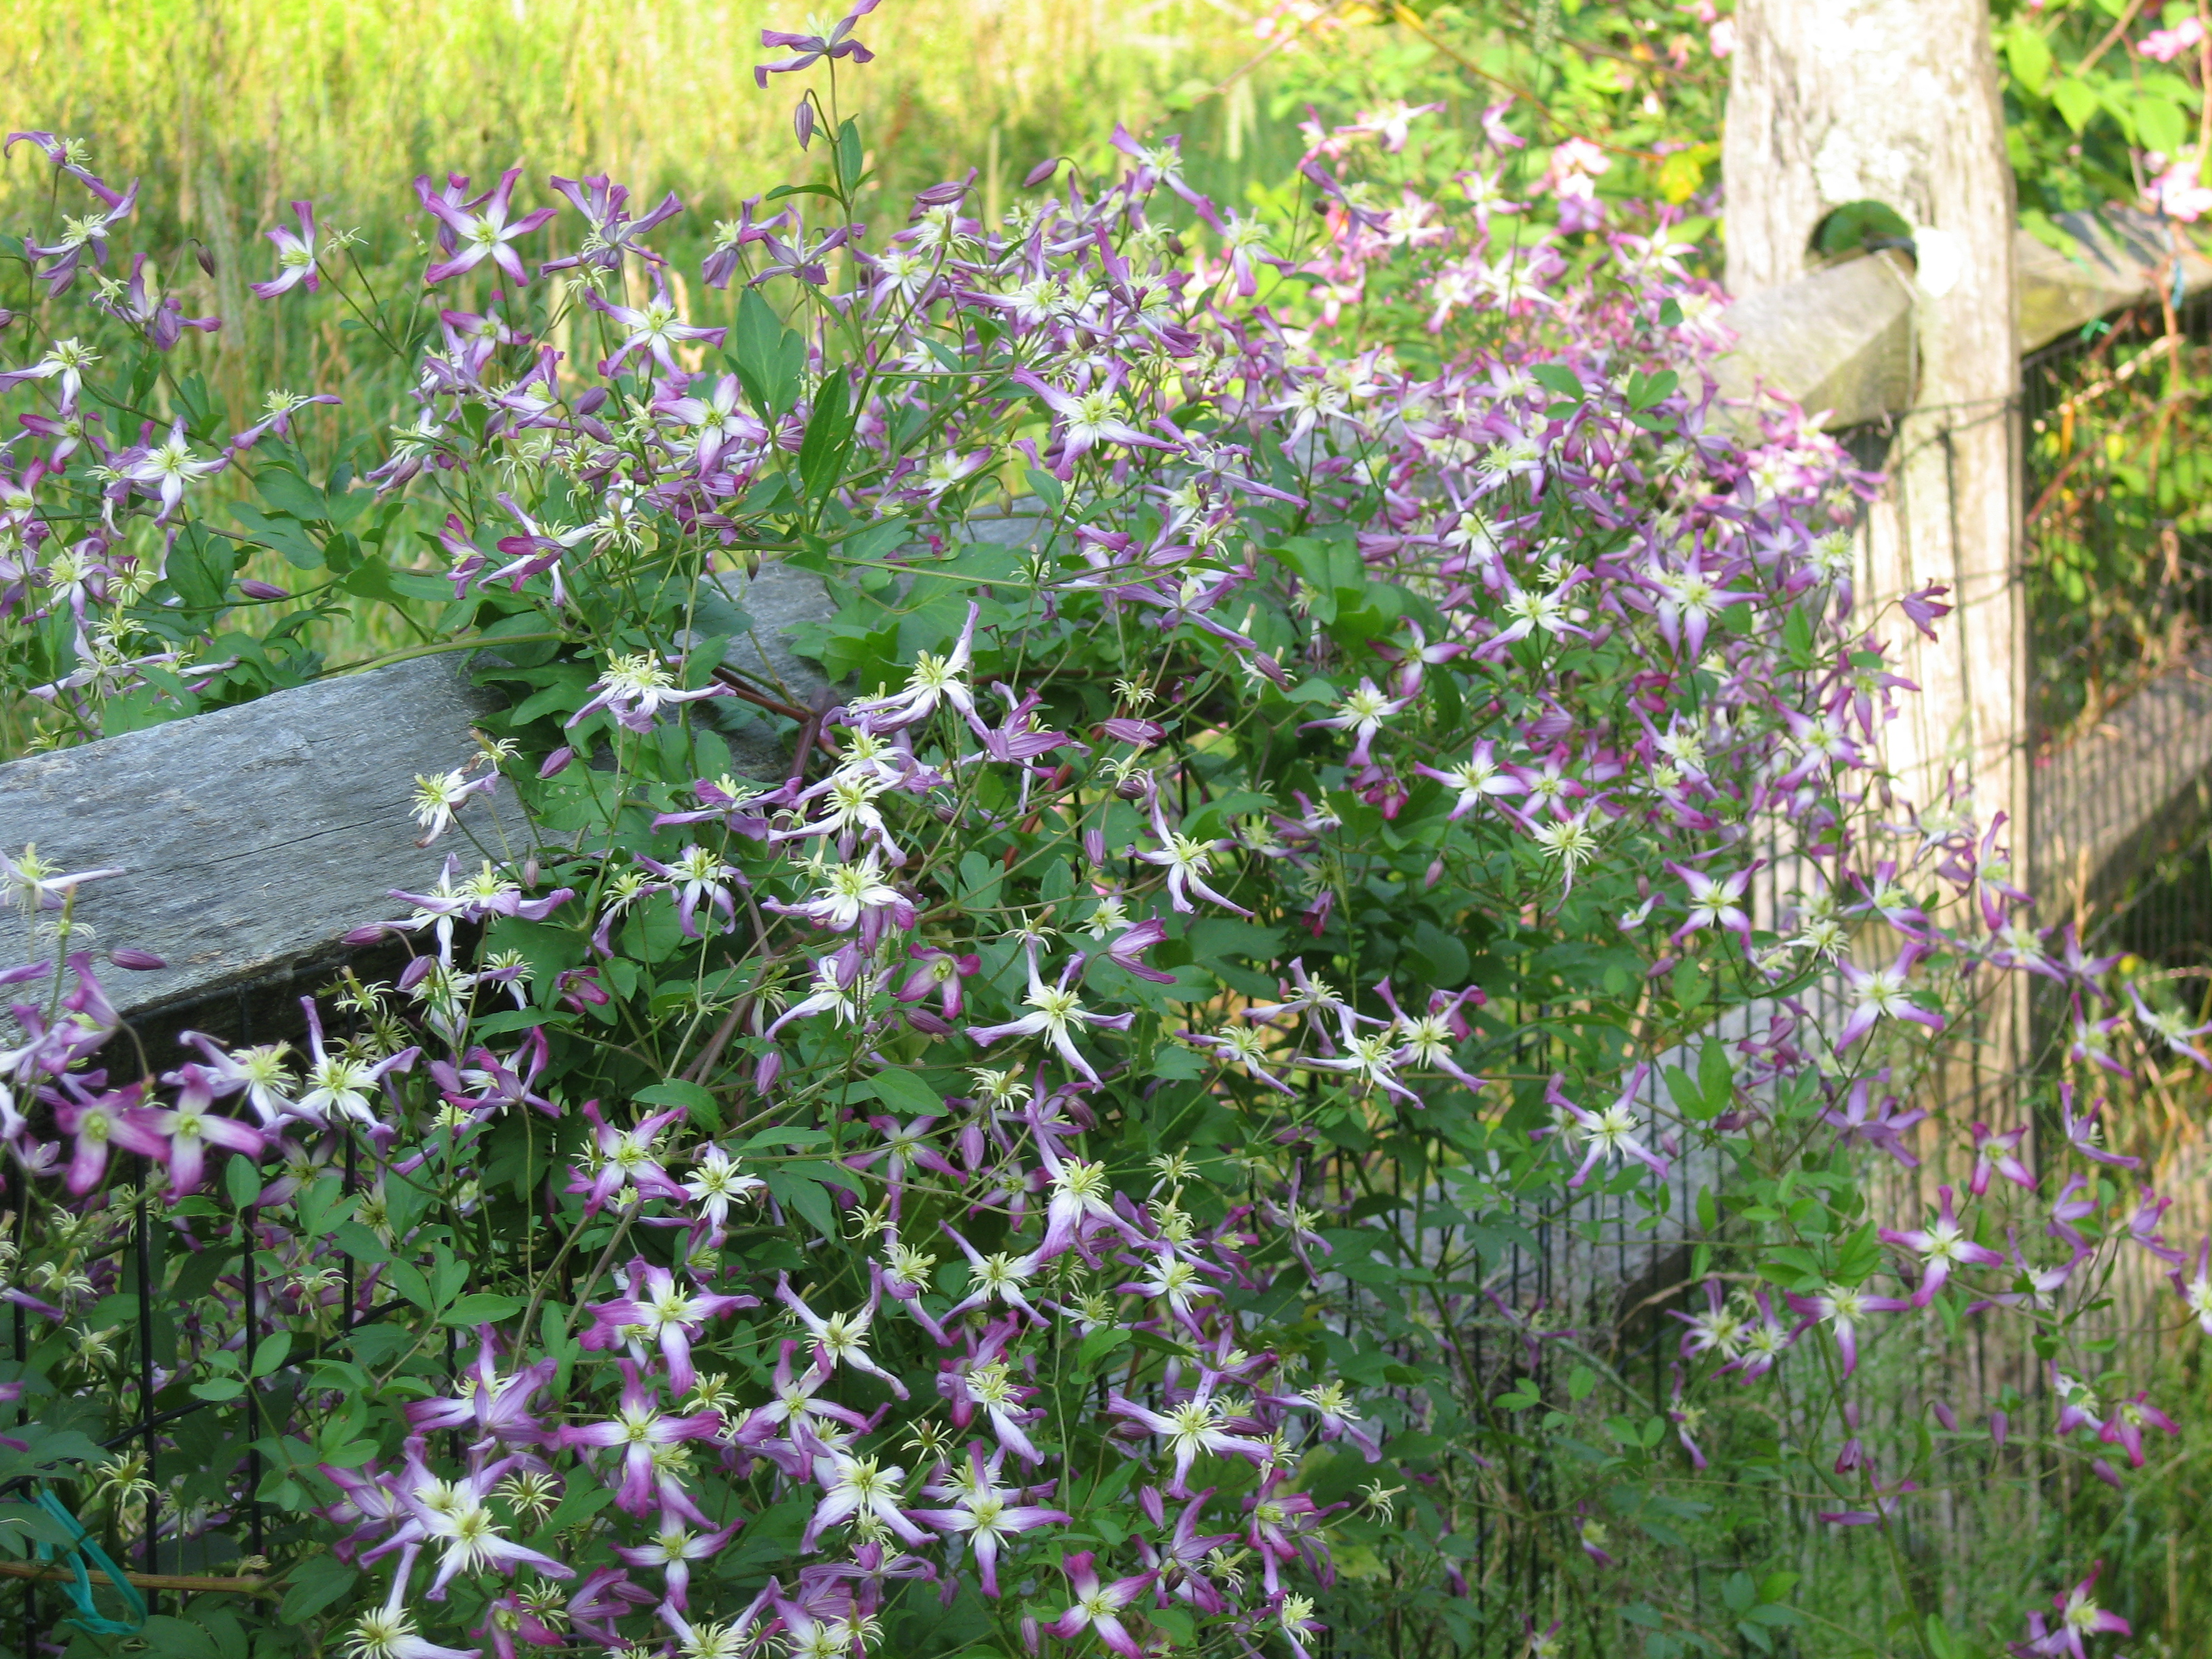 Clematis Triternata Rubromarginata Is The Mouthful Of A Name For Lovely Little Violet And White Species That Has Been Flowering Delicately Weeks